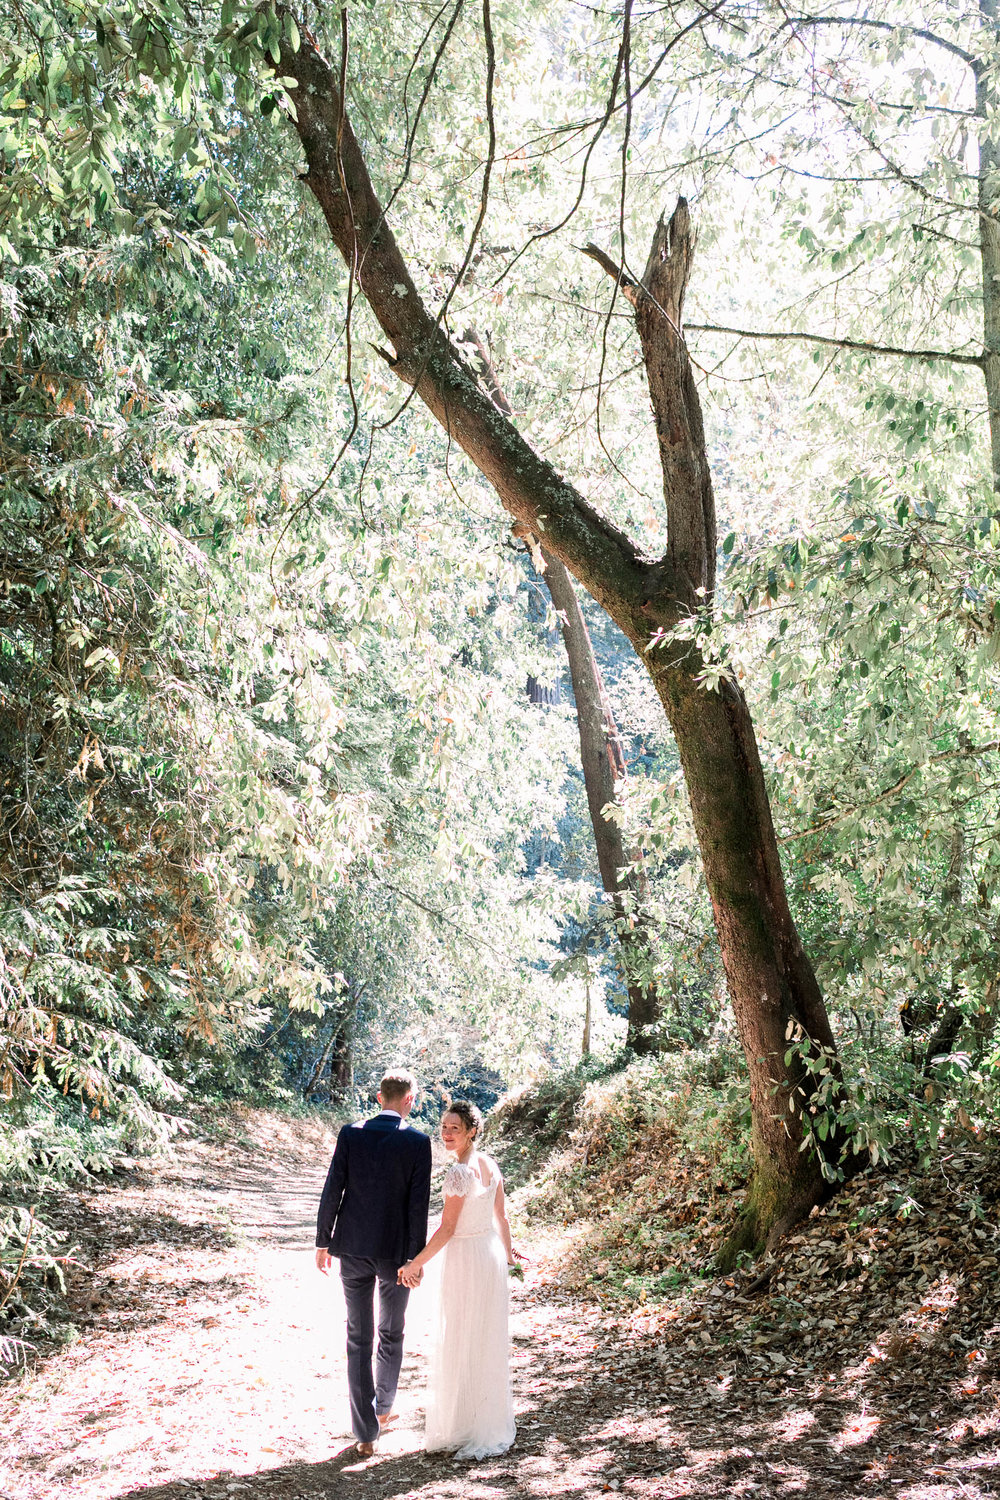 092918_J+S_Mt Madonna Redwoods Wedding_Buena Lane Photography_056.jpg